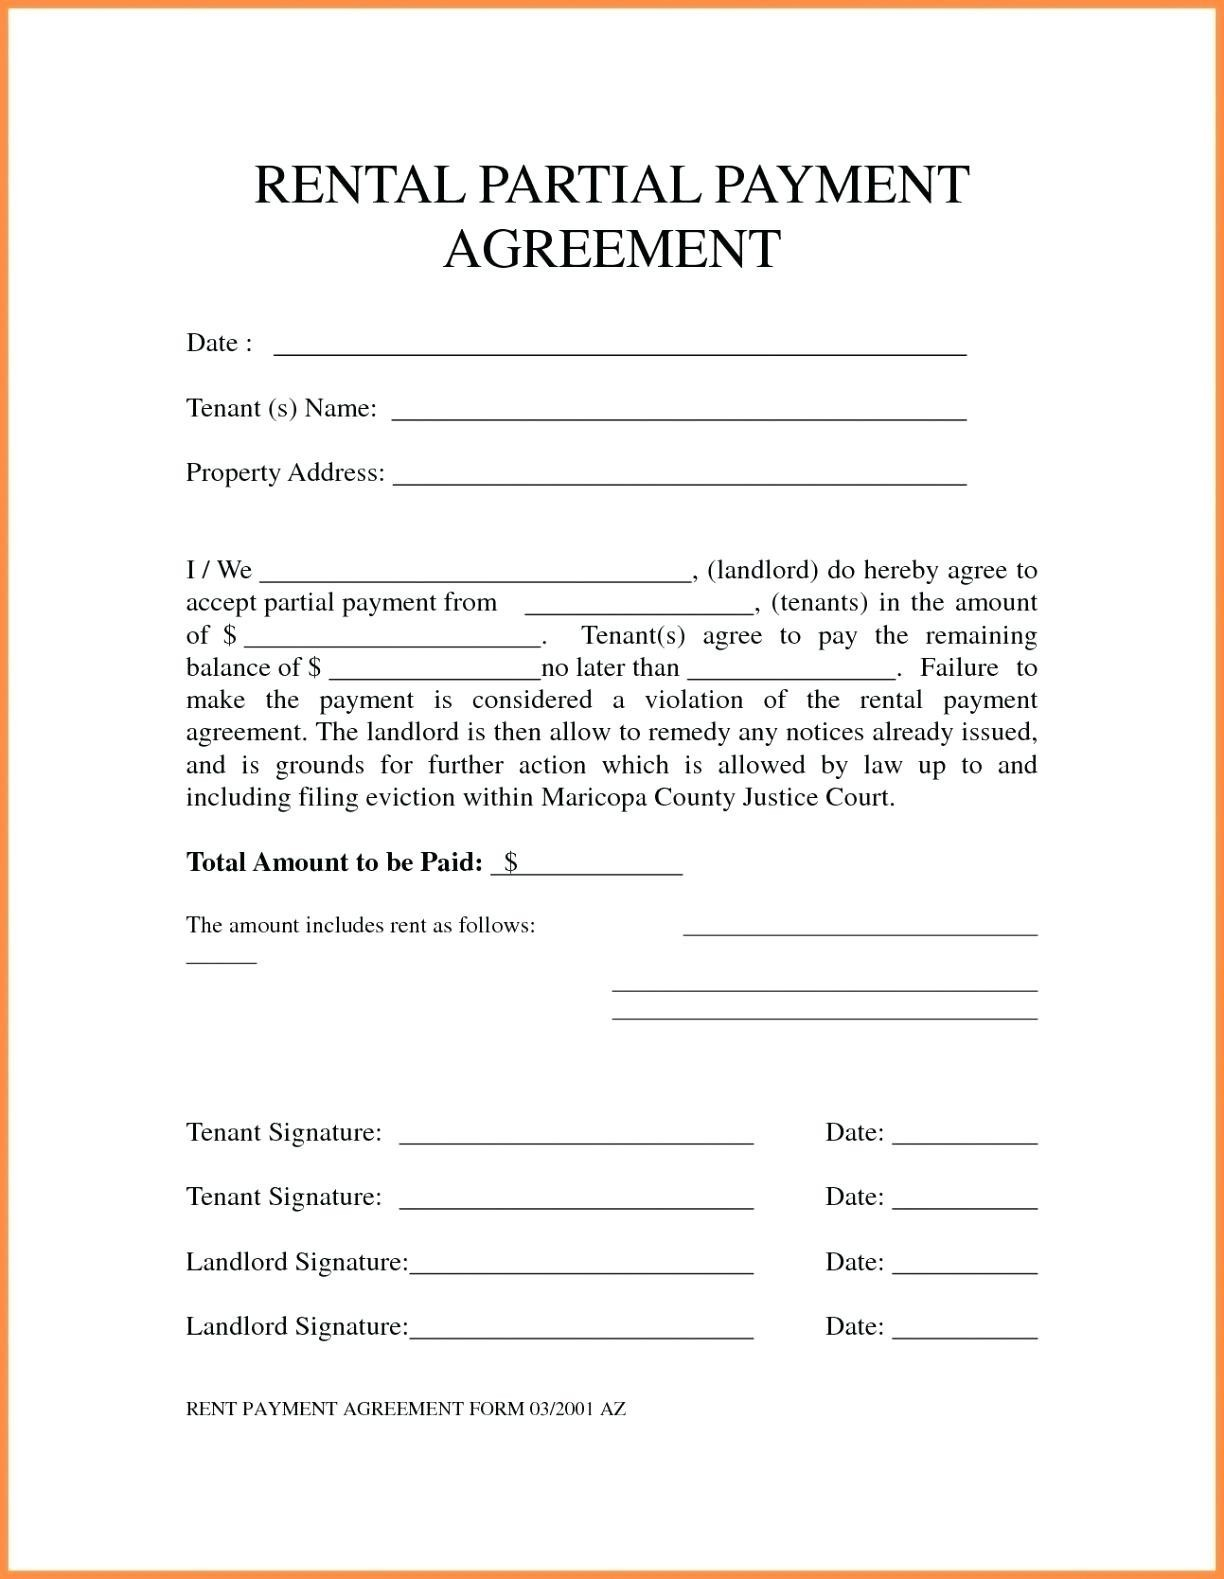 Property Inspection Letter to Tenant Template - Property Inspection Letter to Tenant Uk Archives Fresh Property